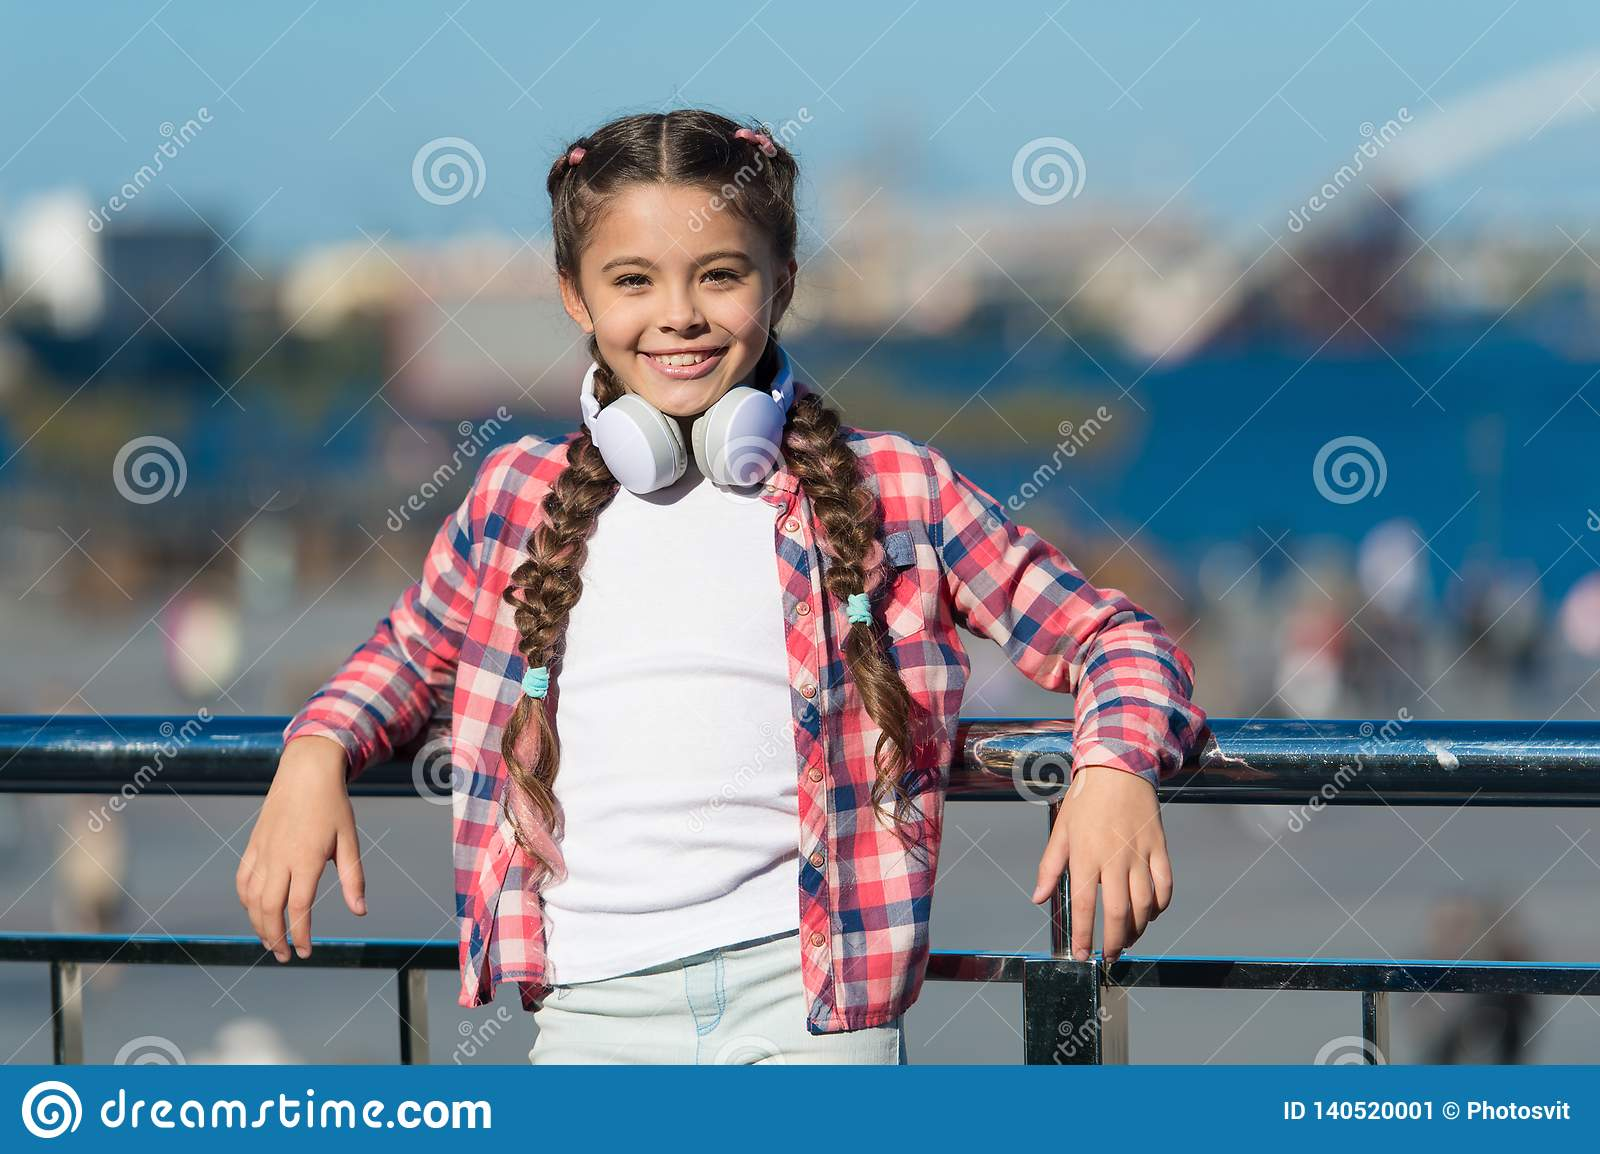 Music account playlist. Customize your music. Discovering new music styles is great way into culture. Kid little girl